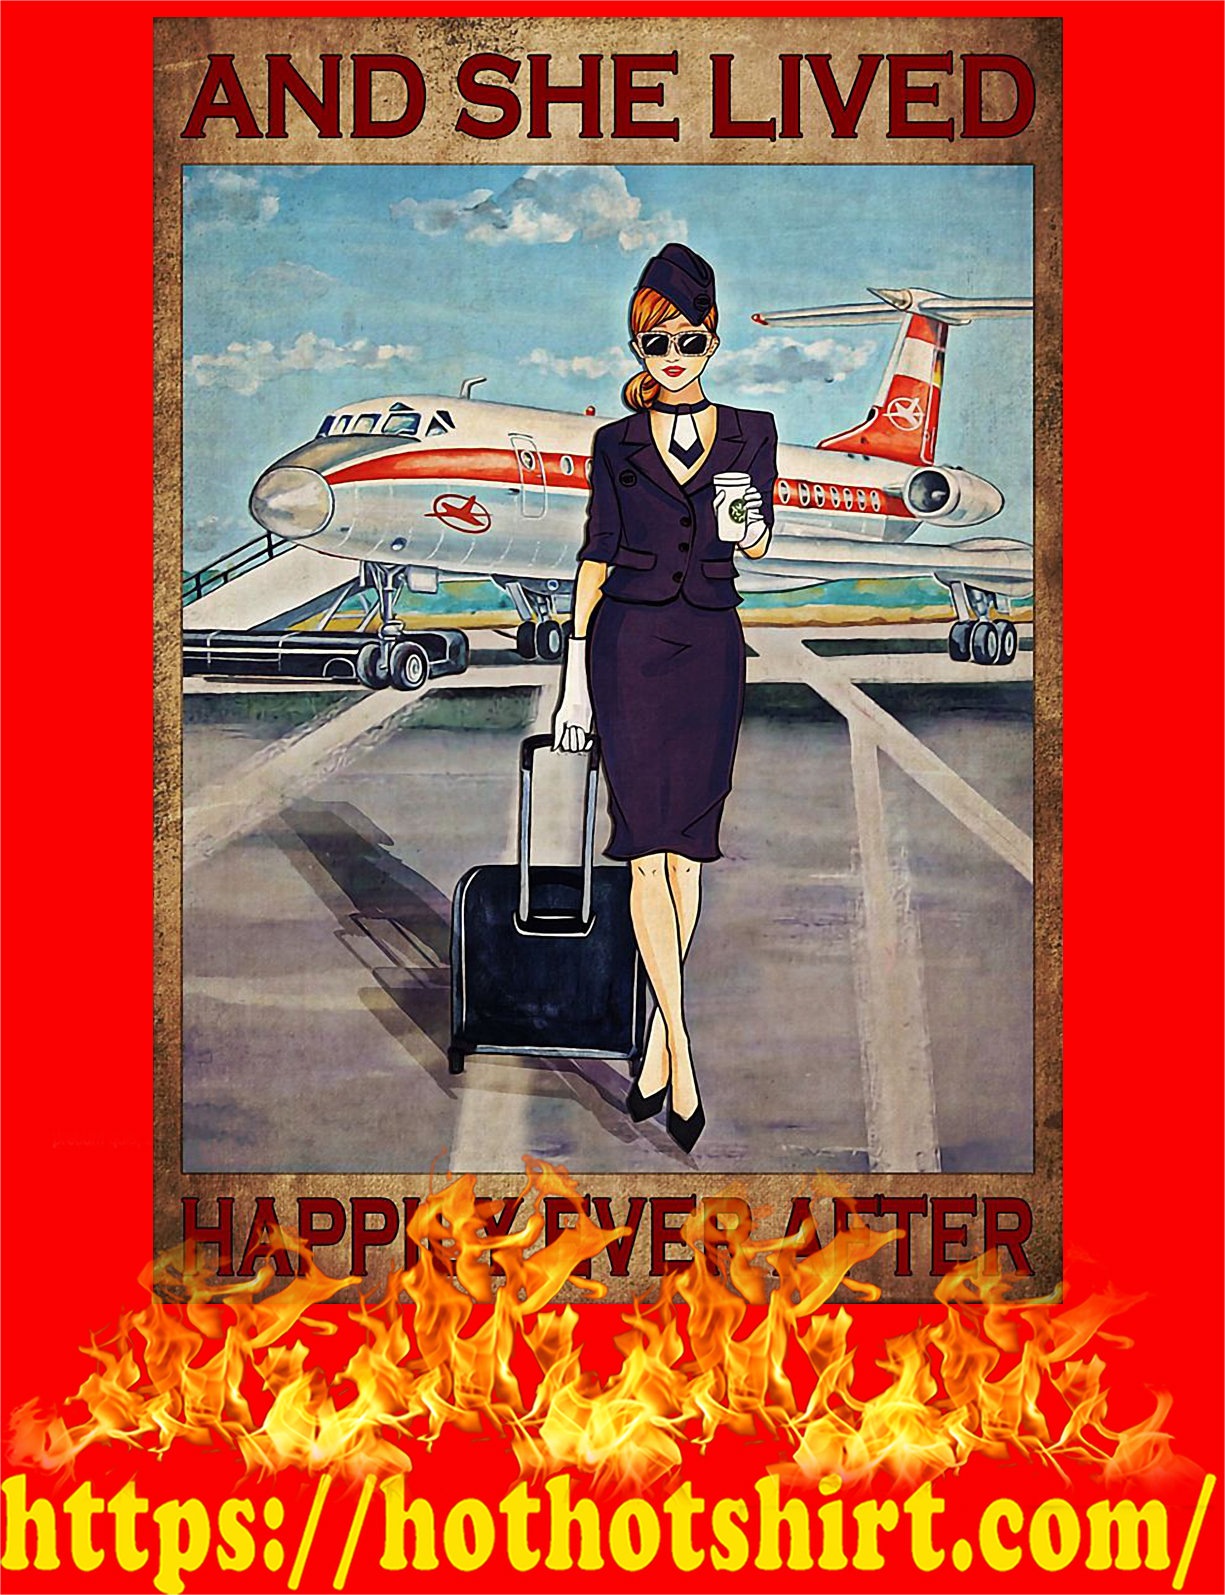 And she lived happily ever after flight attendant poster - style 6